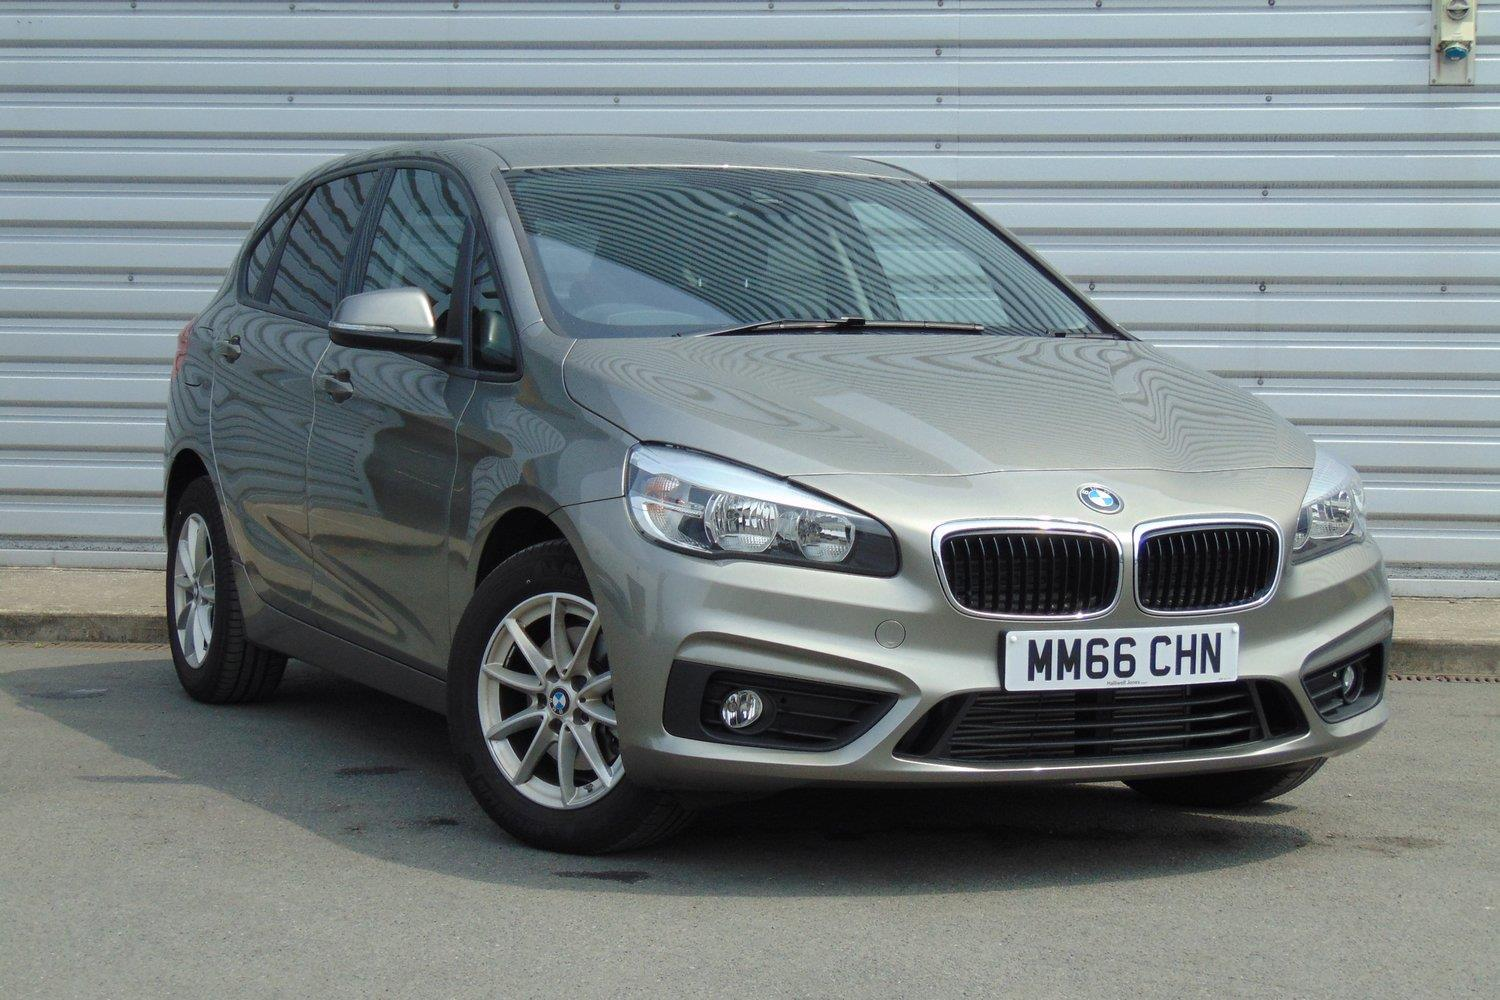 BMW 2 Series Active Tourer 5-Door MM66CHN - Image 10